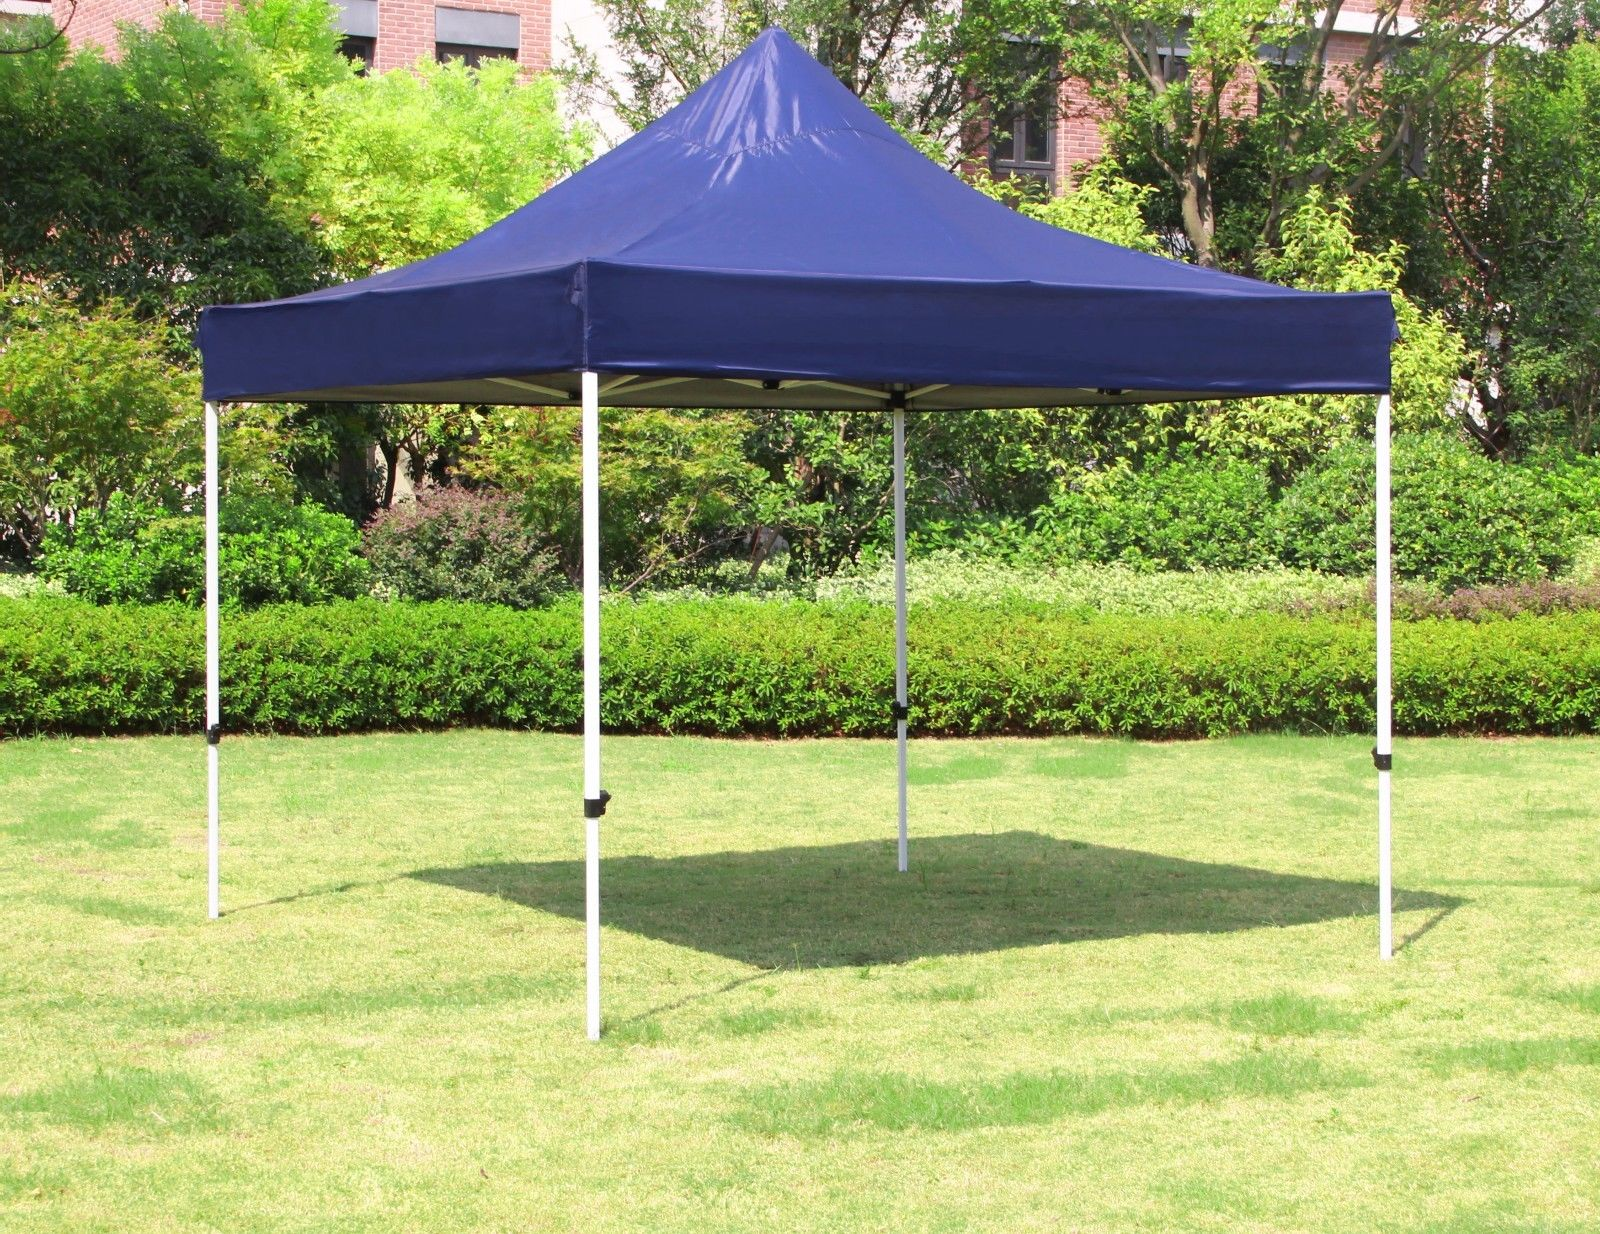 Outdoor-Garden-Gazebo-Portable-Shade-Folding-Canopy-Tent- & Outdoor Garden Gazebo Portable Shade Folding Canopy Tent 10 x 10 ...